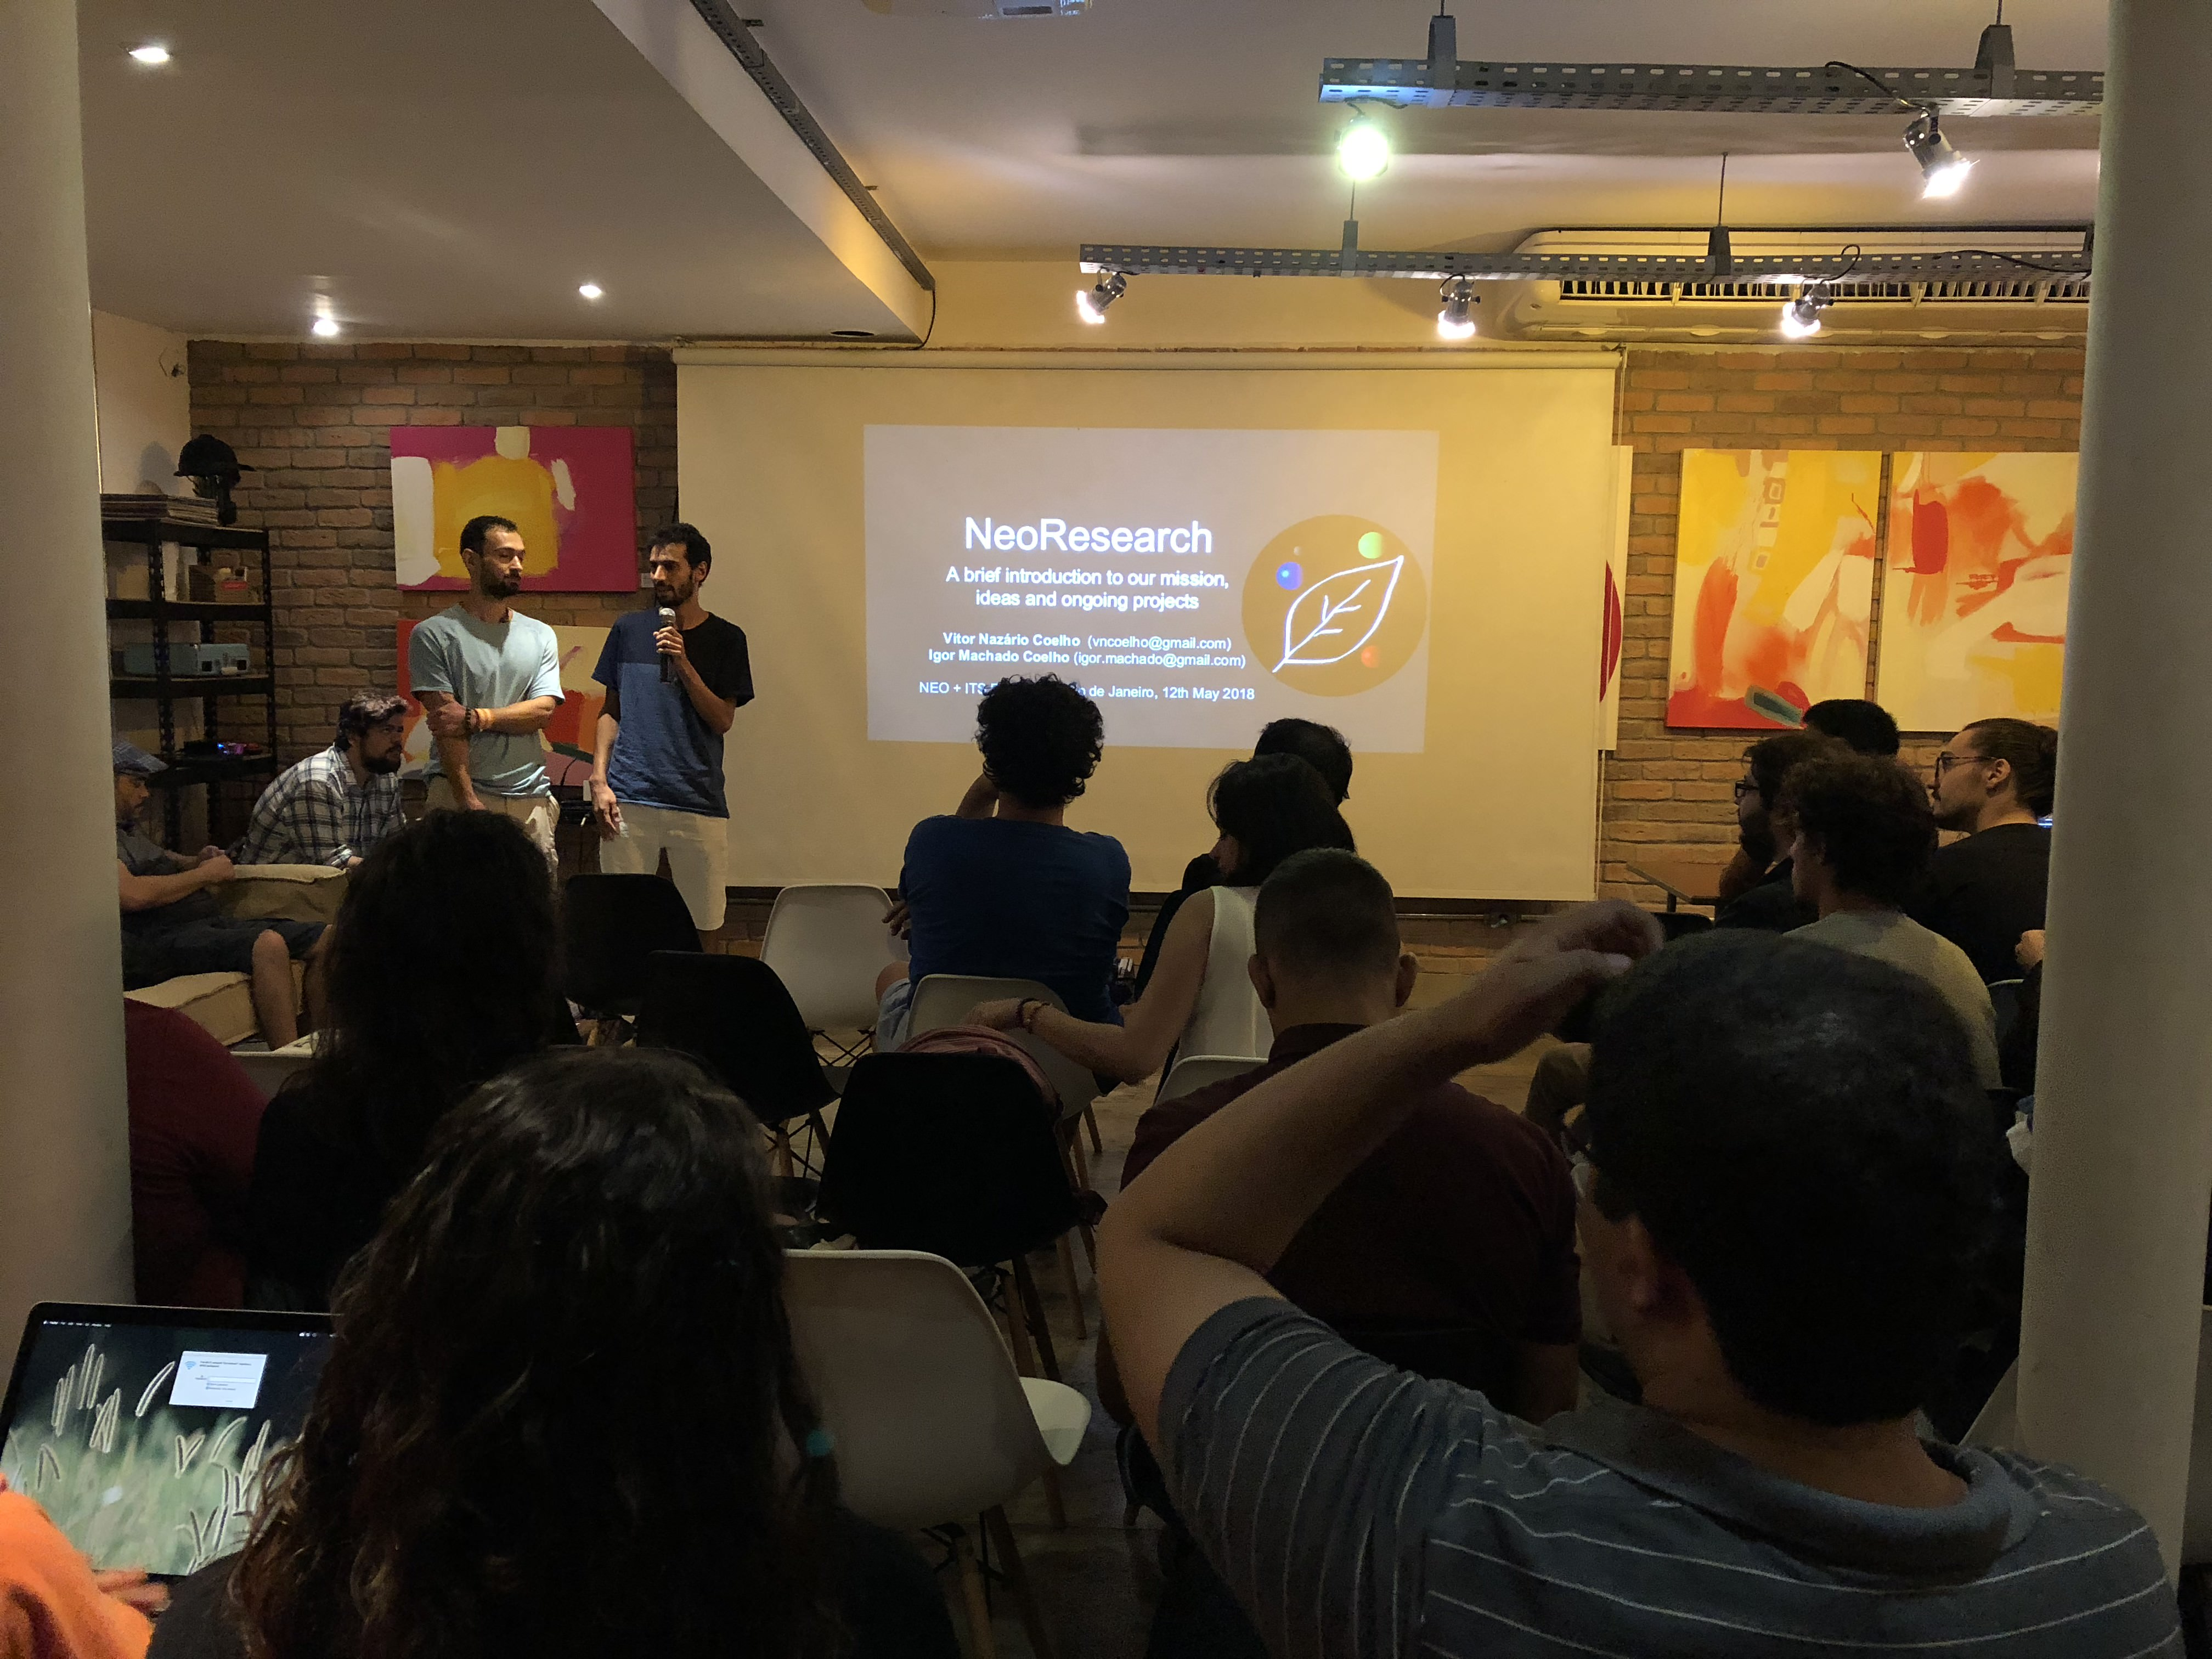 Vitor Coelho and Igor Coelho Workshop – Programming Smart Contracts with NeoCompiler Eco (system). Rio de Janeiro, 2018 - III.